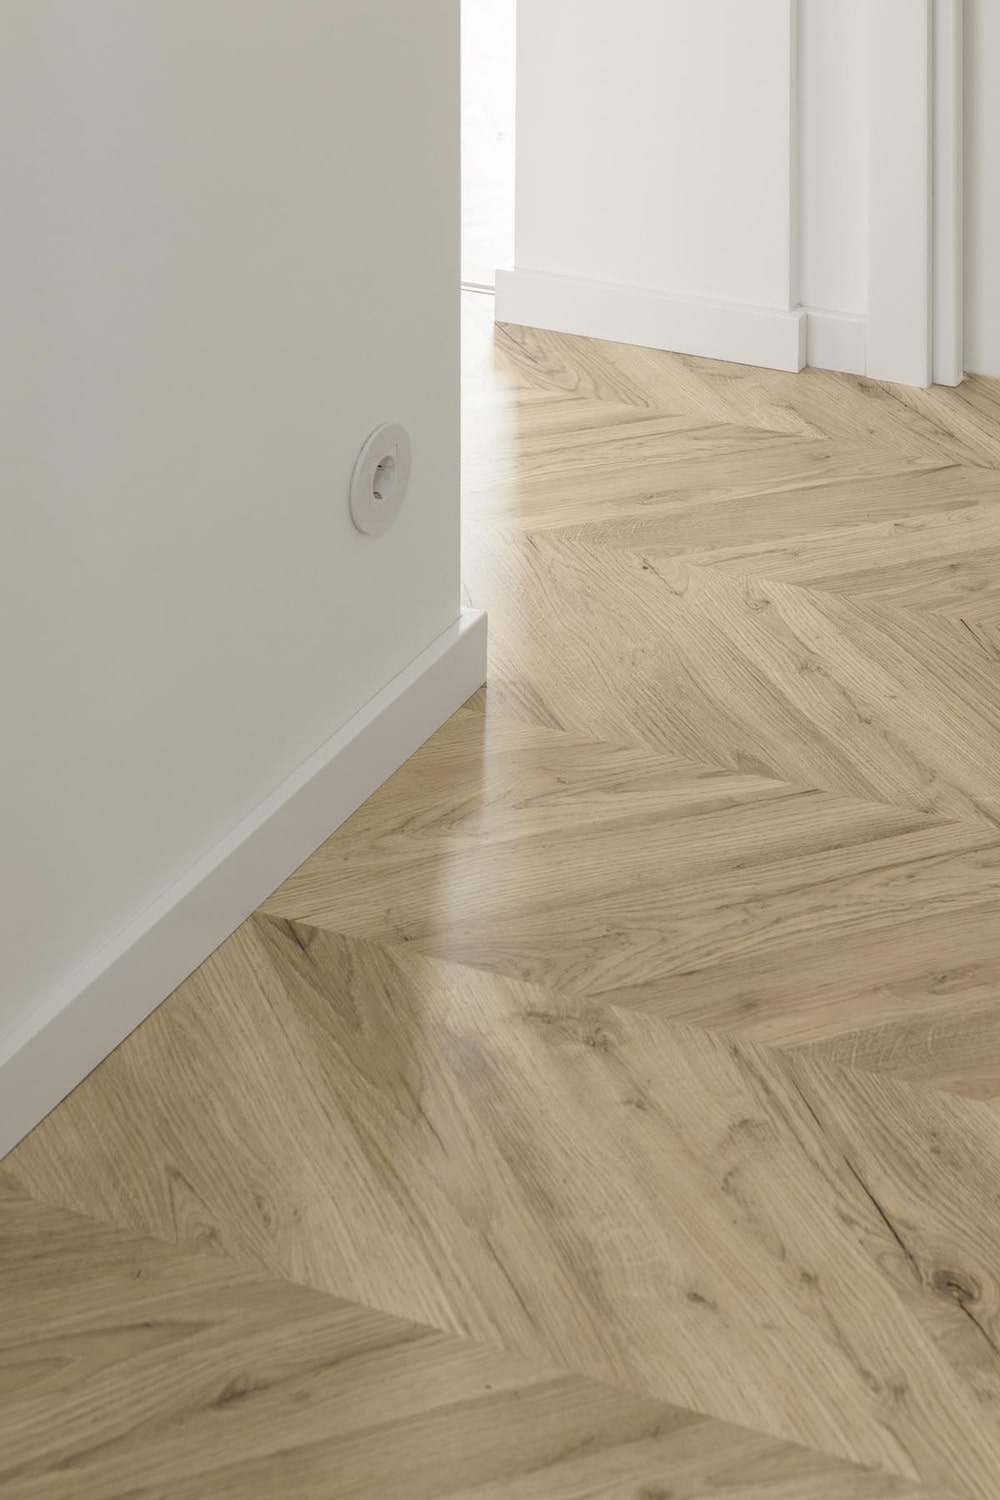 This is a close look at the white wall and how it is complemented by the herringbone marble flooring.